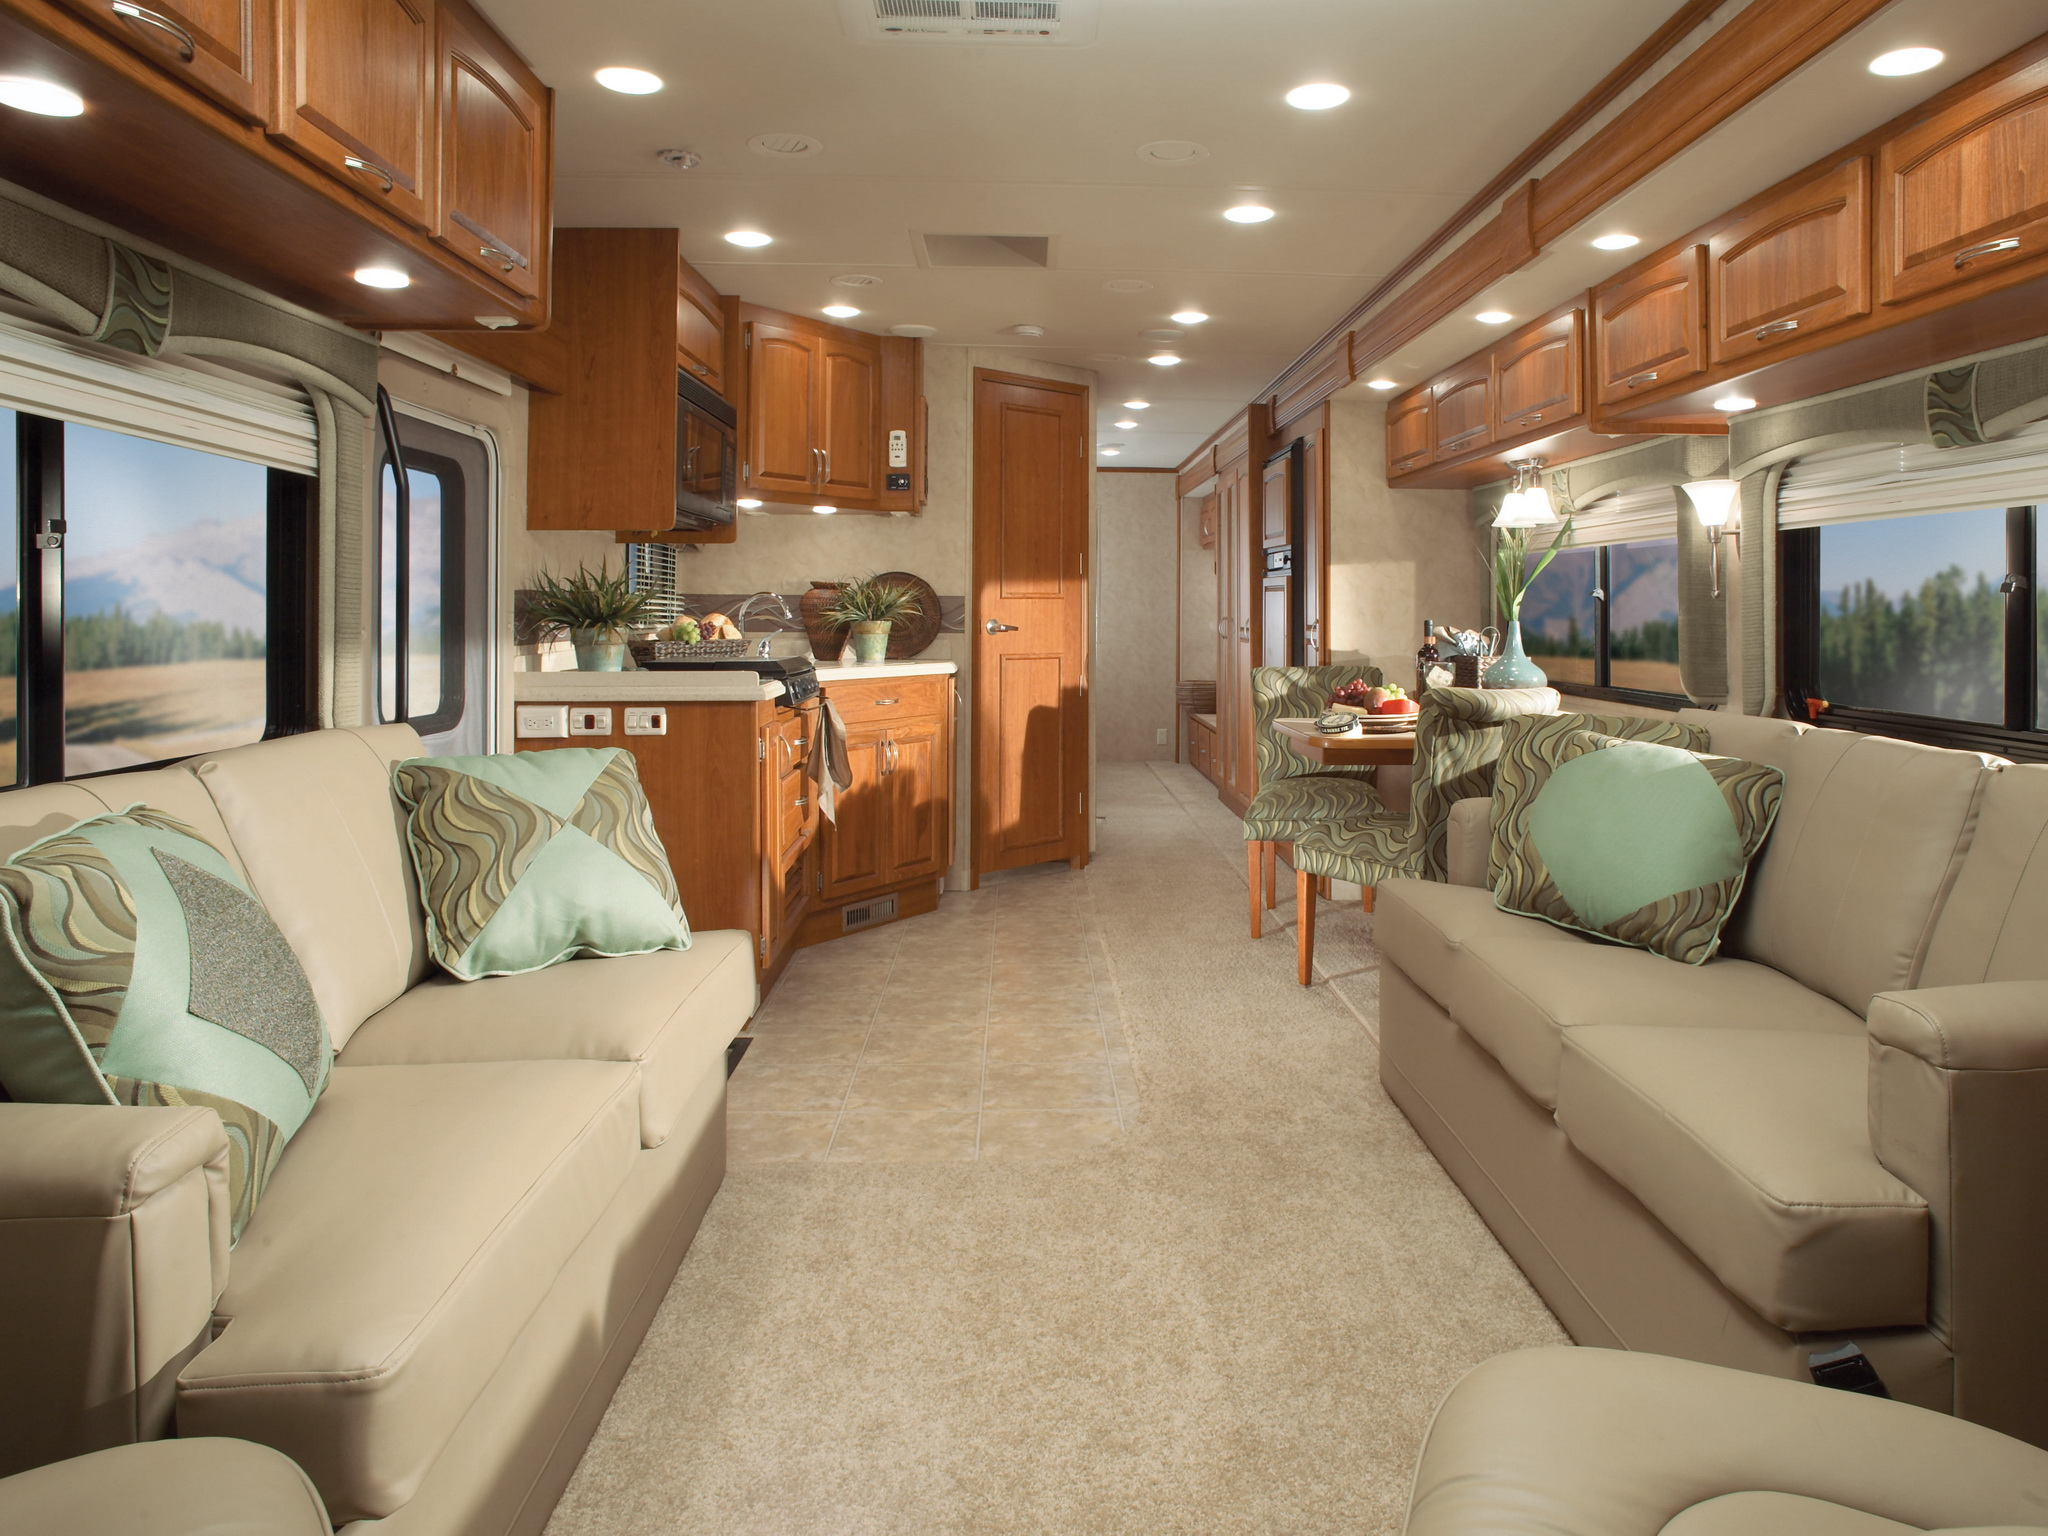 Trailerable Houseboats as well 0727 Tiny House Living On Cape Cod together with Index php additionally 62 Ice Spiders also Shower People Box Truck Delivers Hot Showers Homeless. on trailer home plans